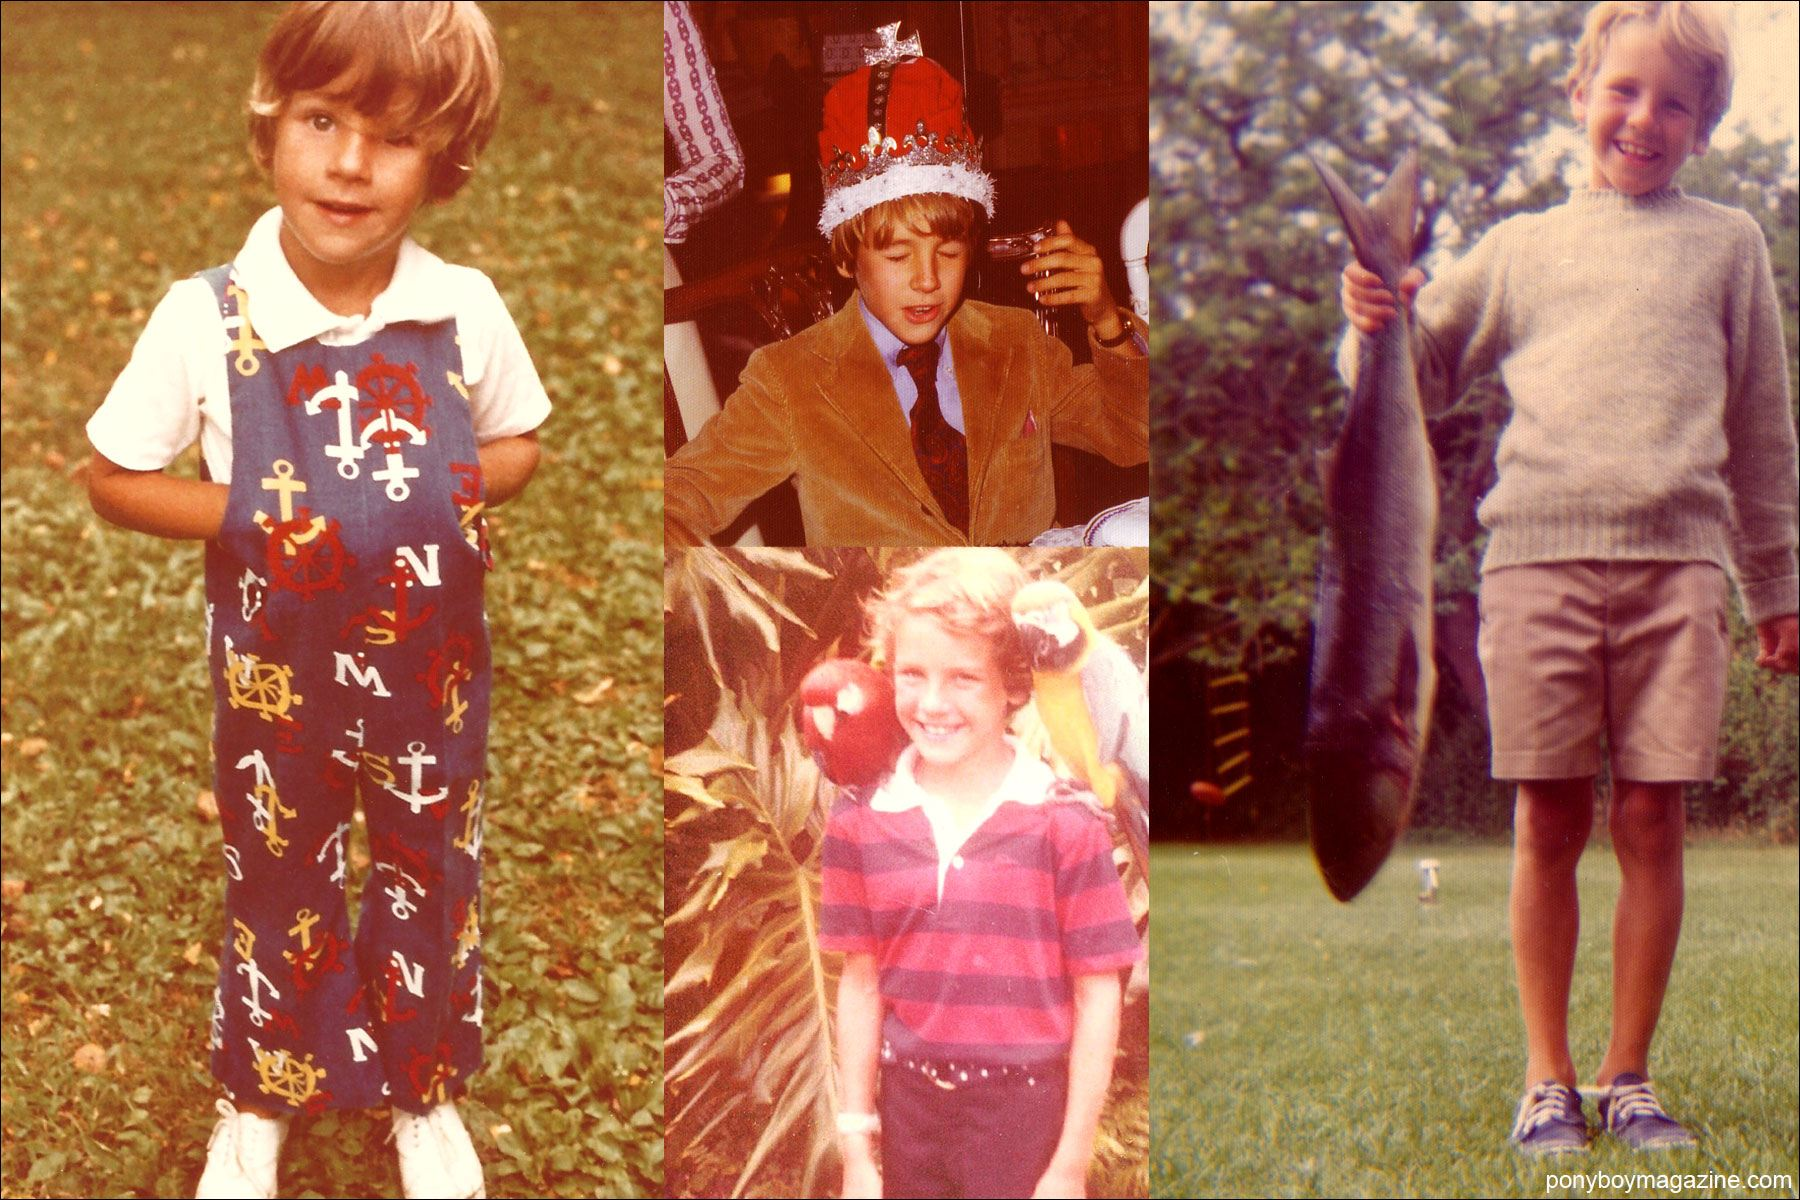 Assorted childhood photos of Peter Davis. Ponyboy Magazine.